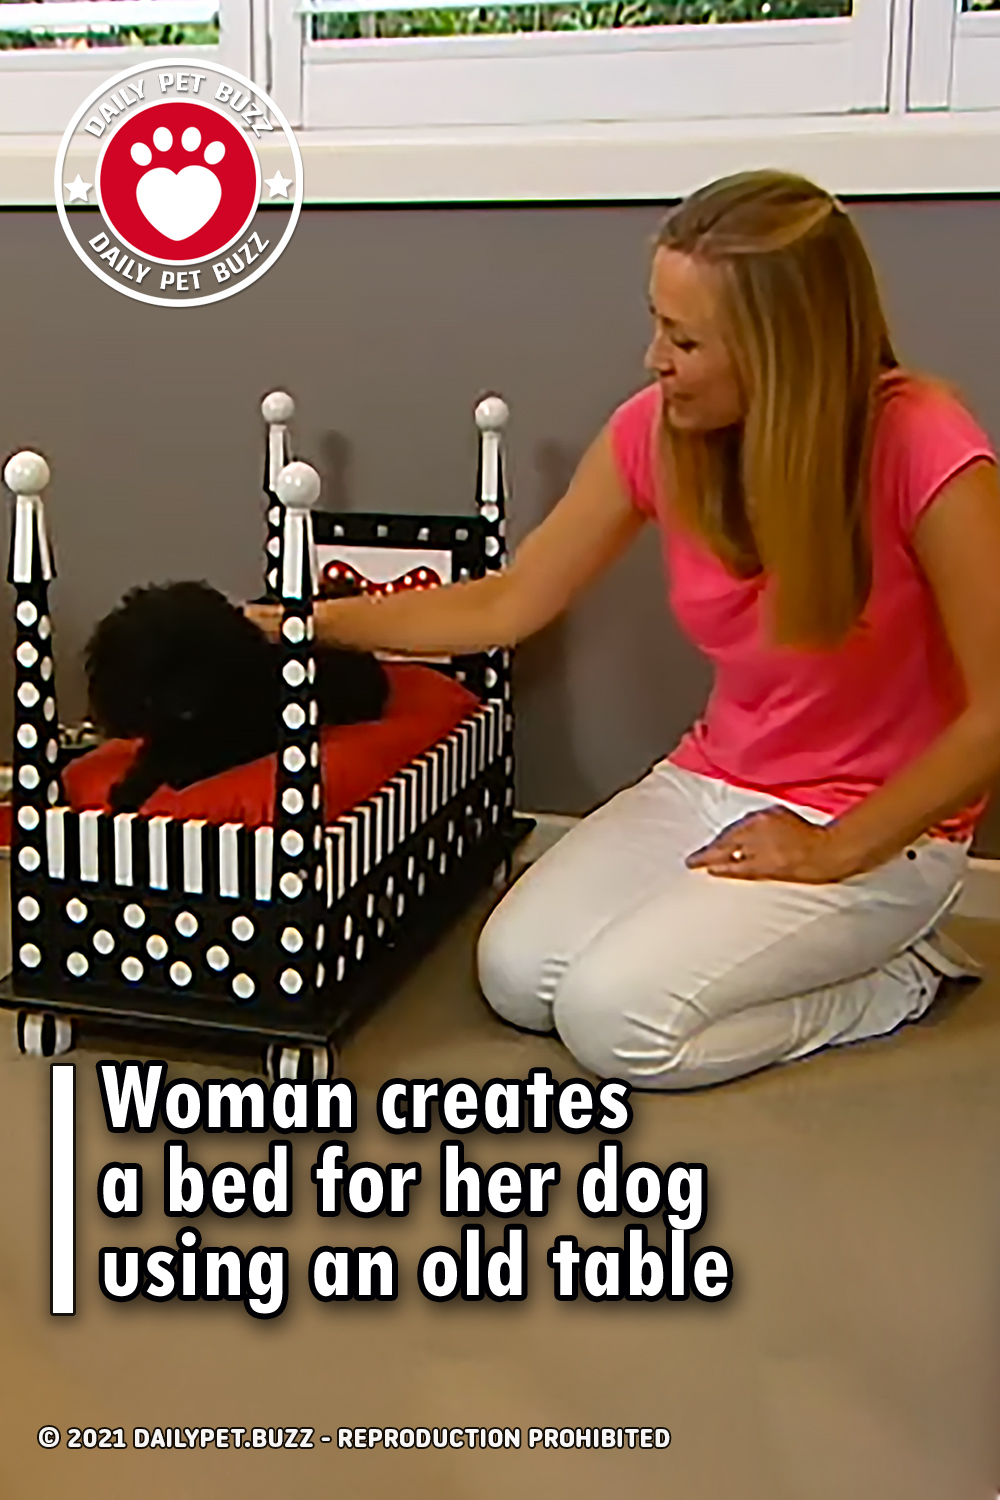 Woman creates a bed for her dog using an old table